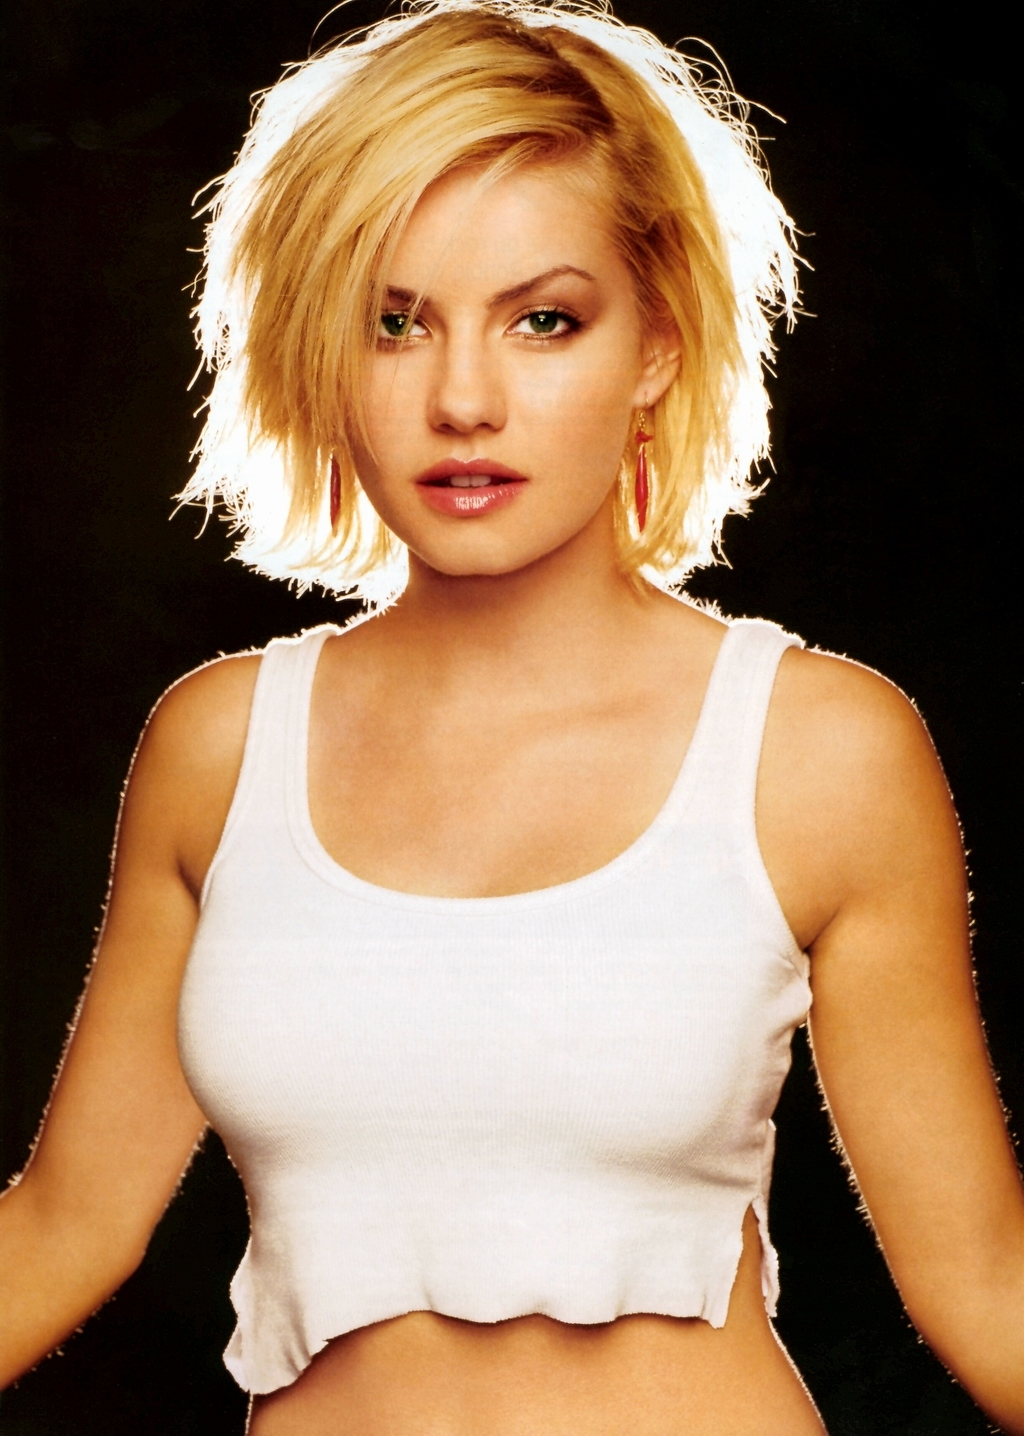 Women elisha cuthbert girl HD Wallpaper